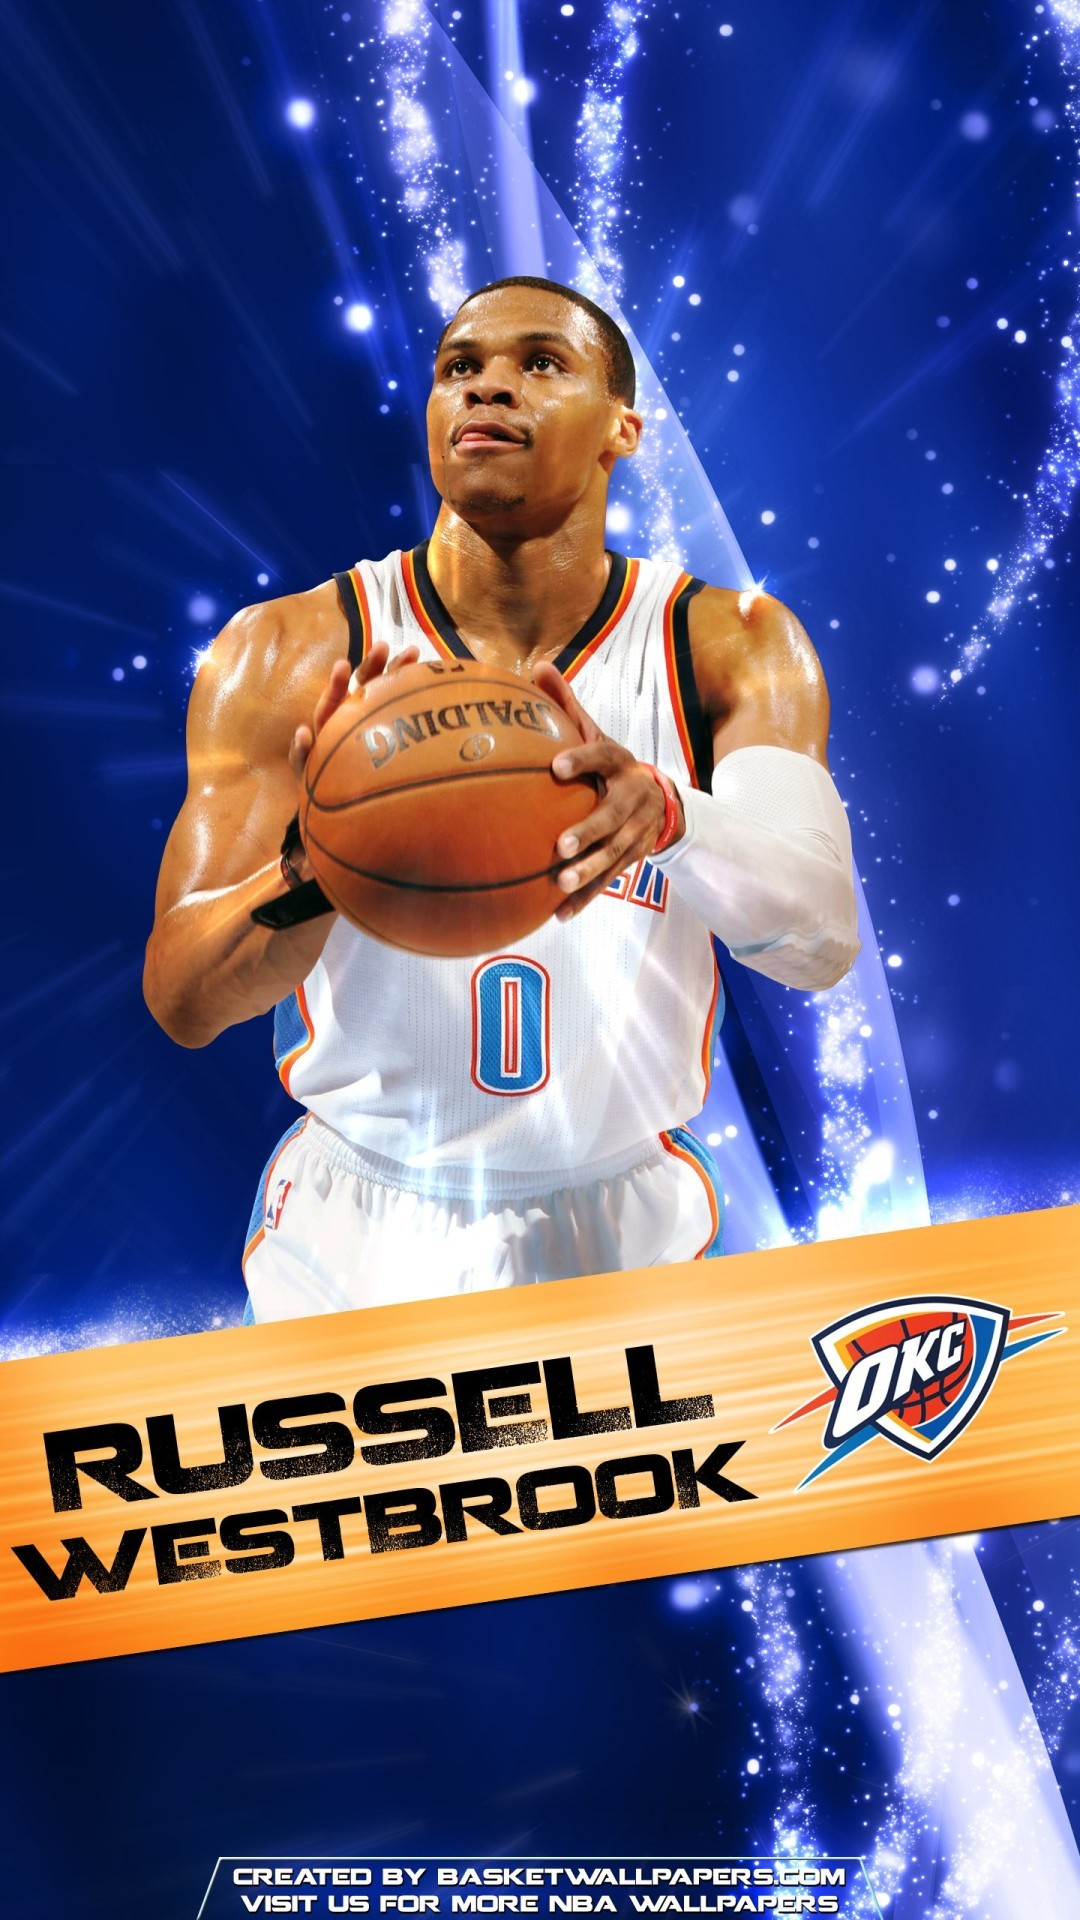 View Larger Image Russell Westbrook NBA iPhone Wallpaper